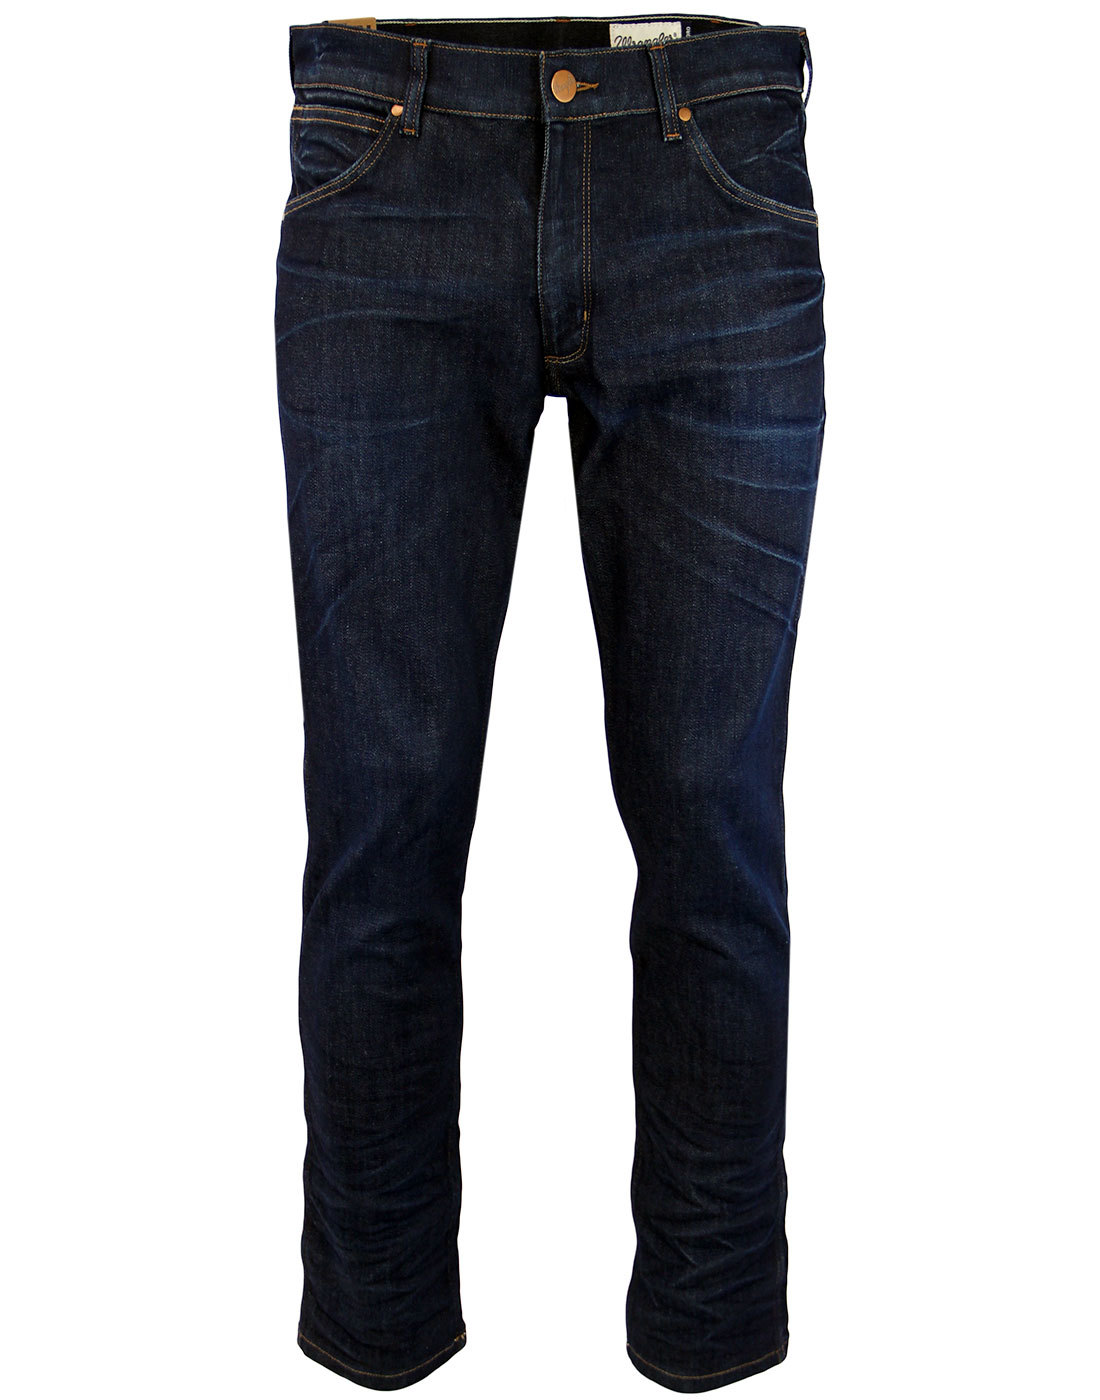 Greensboro WRANGLER Straight Leg Denim Jeans (RR)